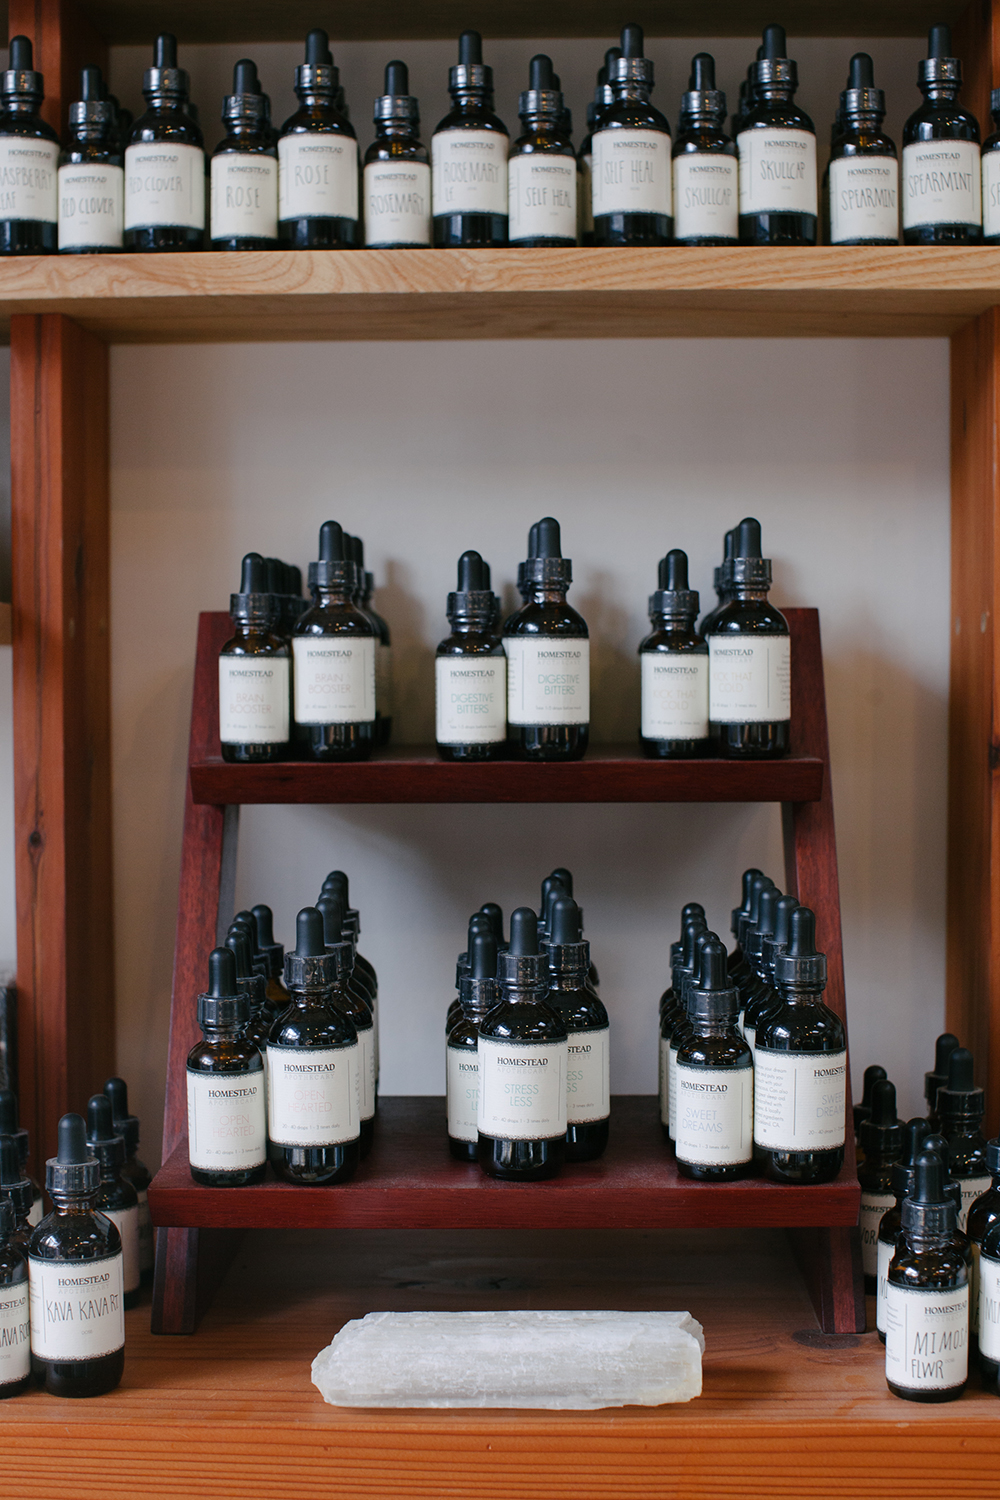 Edition_Local_Homestead_Apothecary_1068.jpg